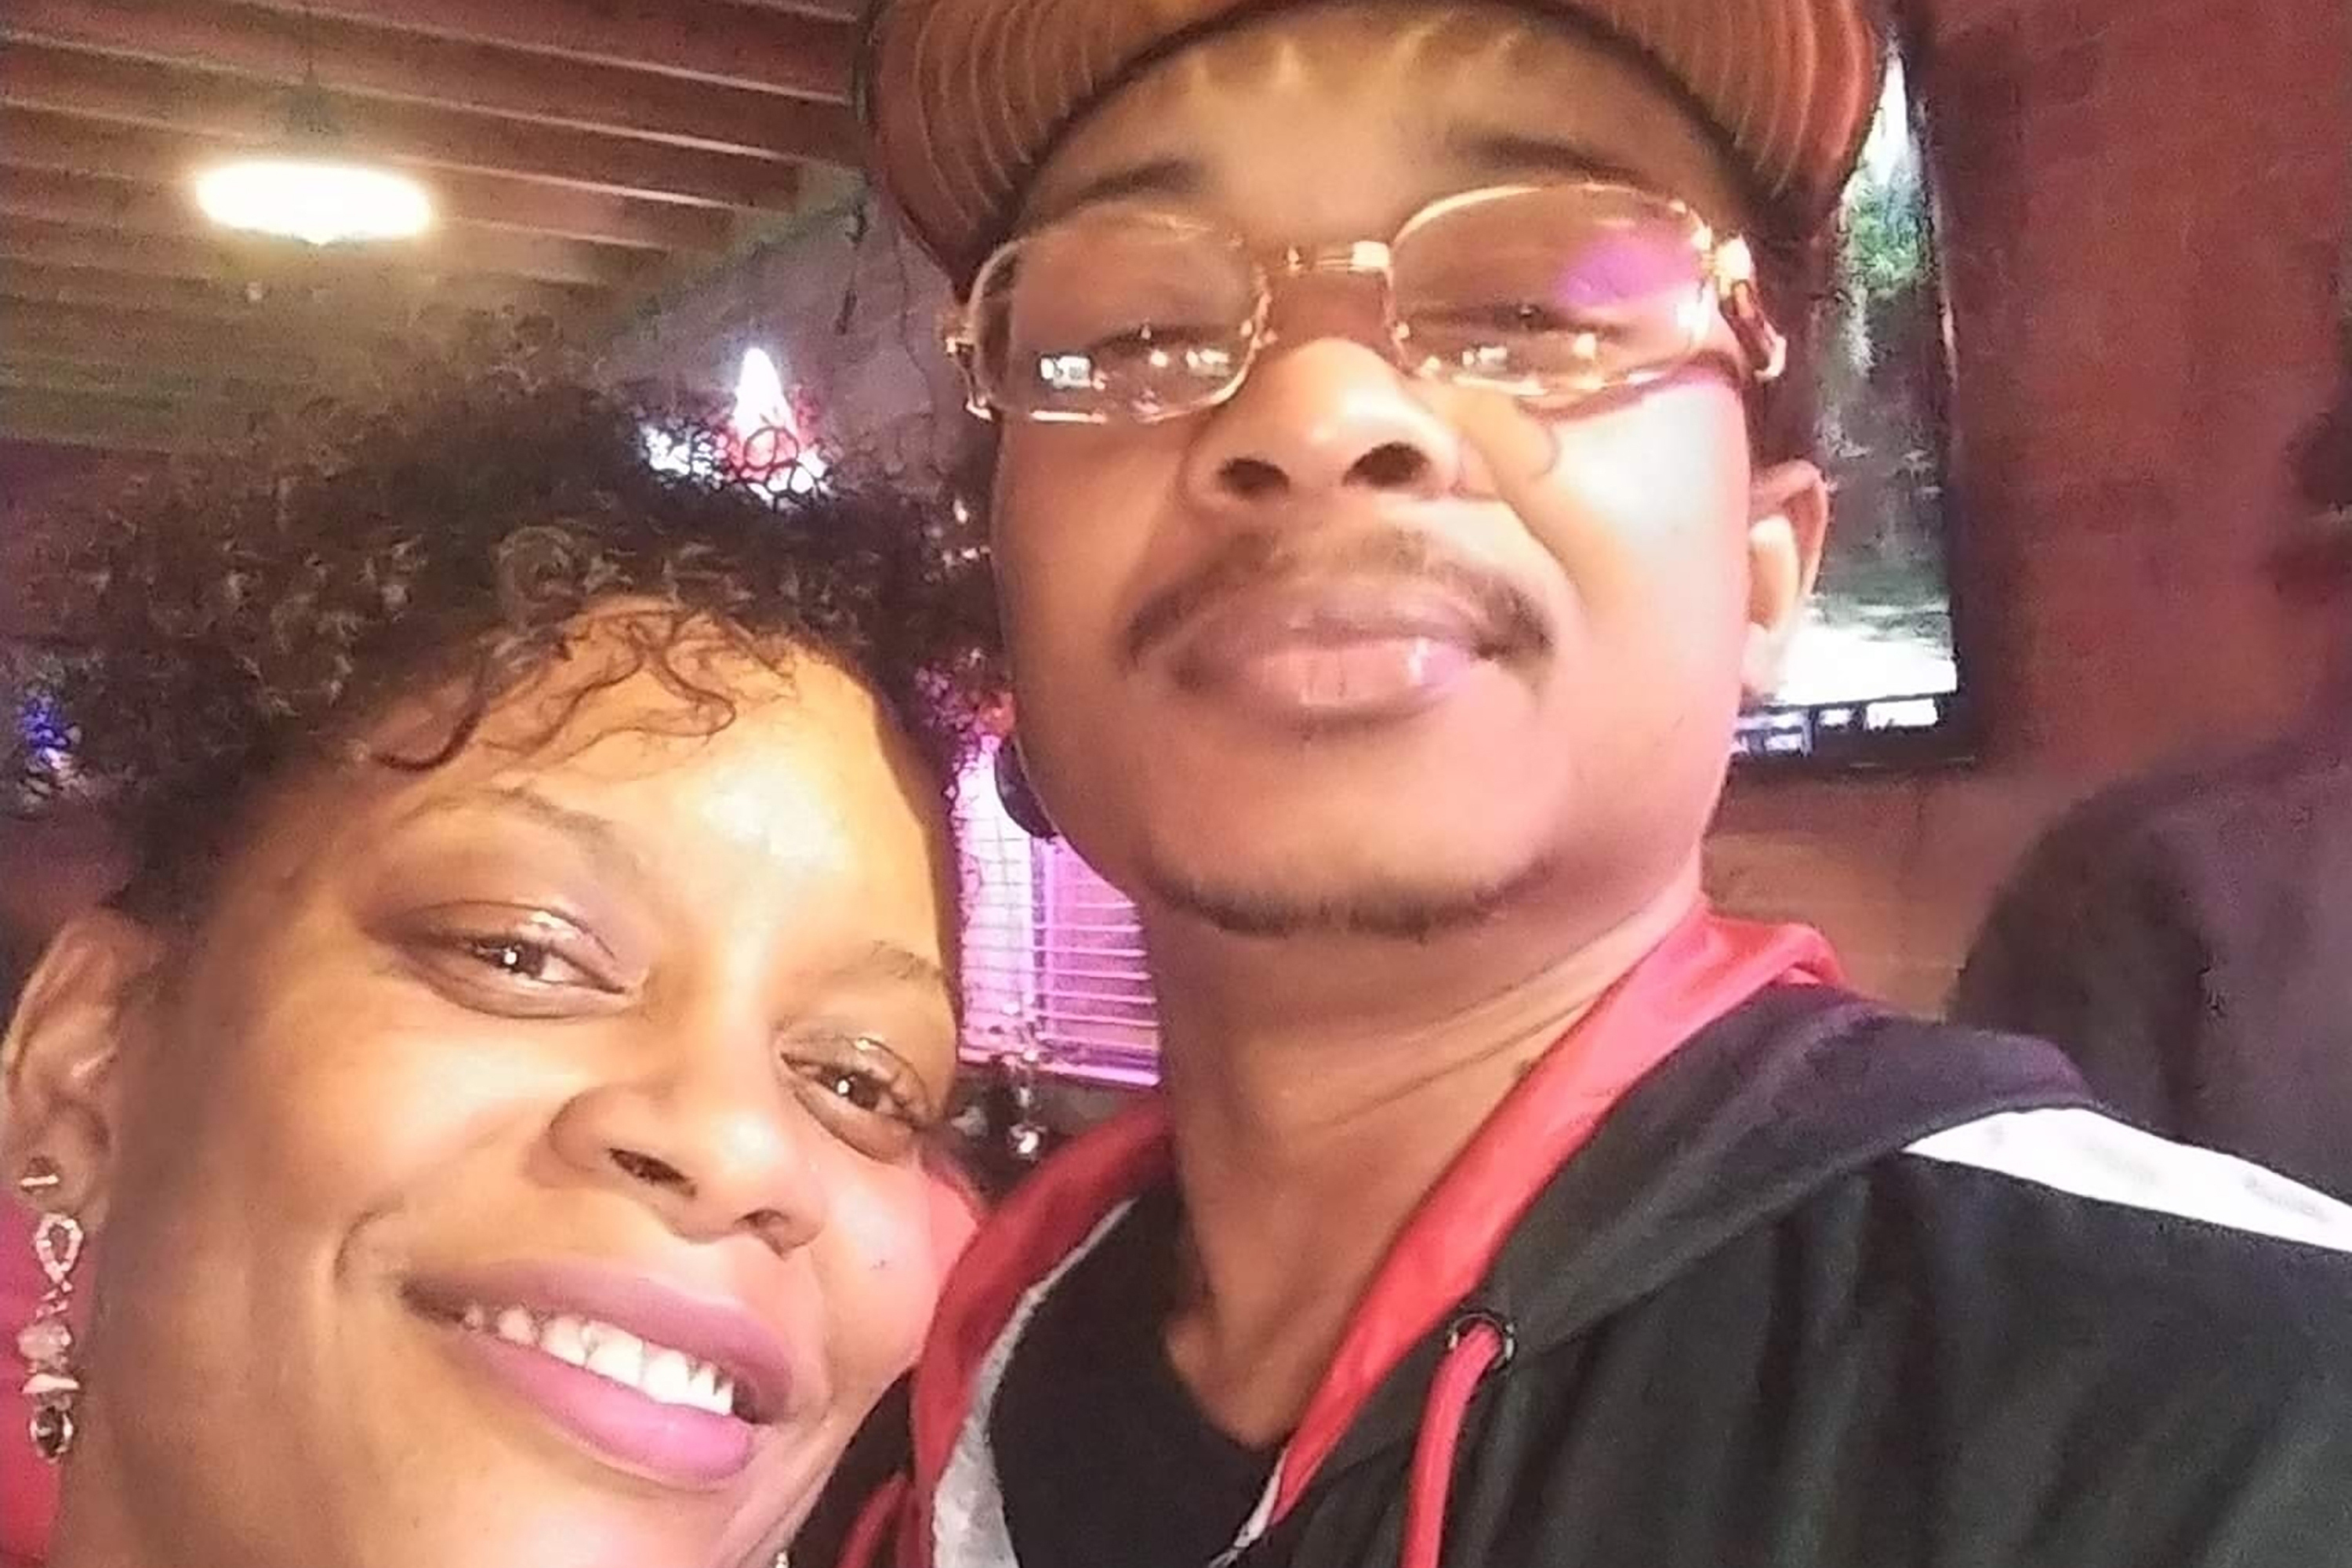 In this September 2019 selfie photo taken in Evanston, Ill., Adria-Joi Watkins poses with her second cousin Jacob Blake. He is recovering from being shot multiple times by Kenosha police on Aug. 23. Photo: AP